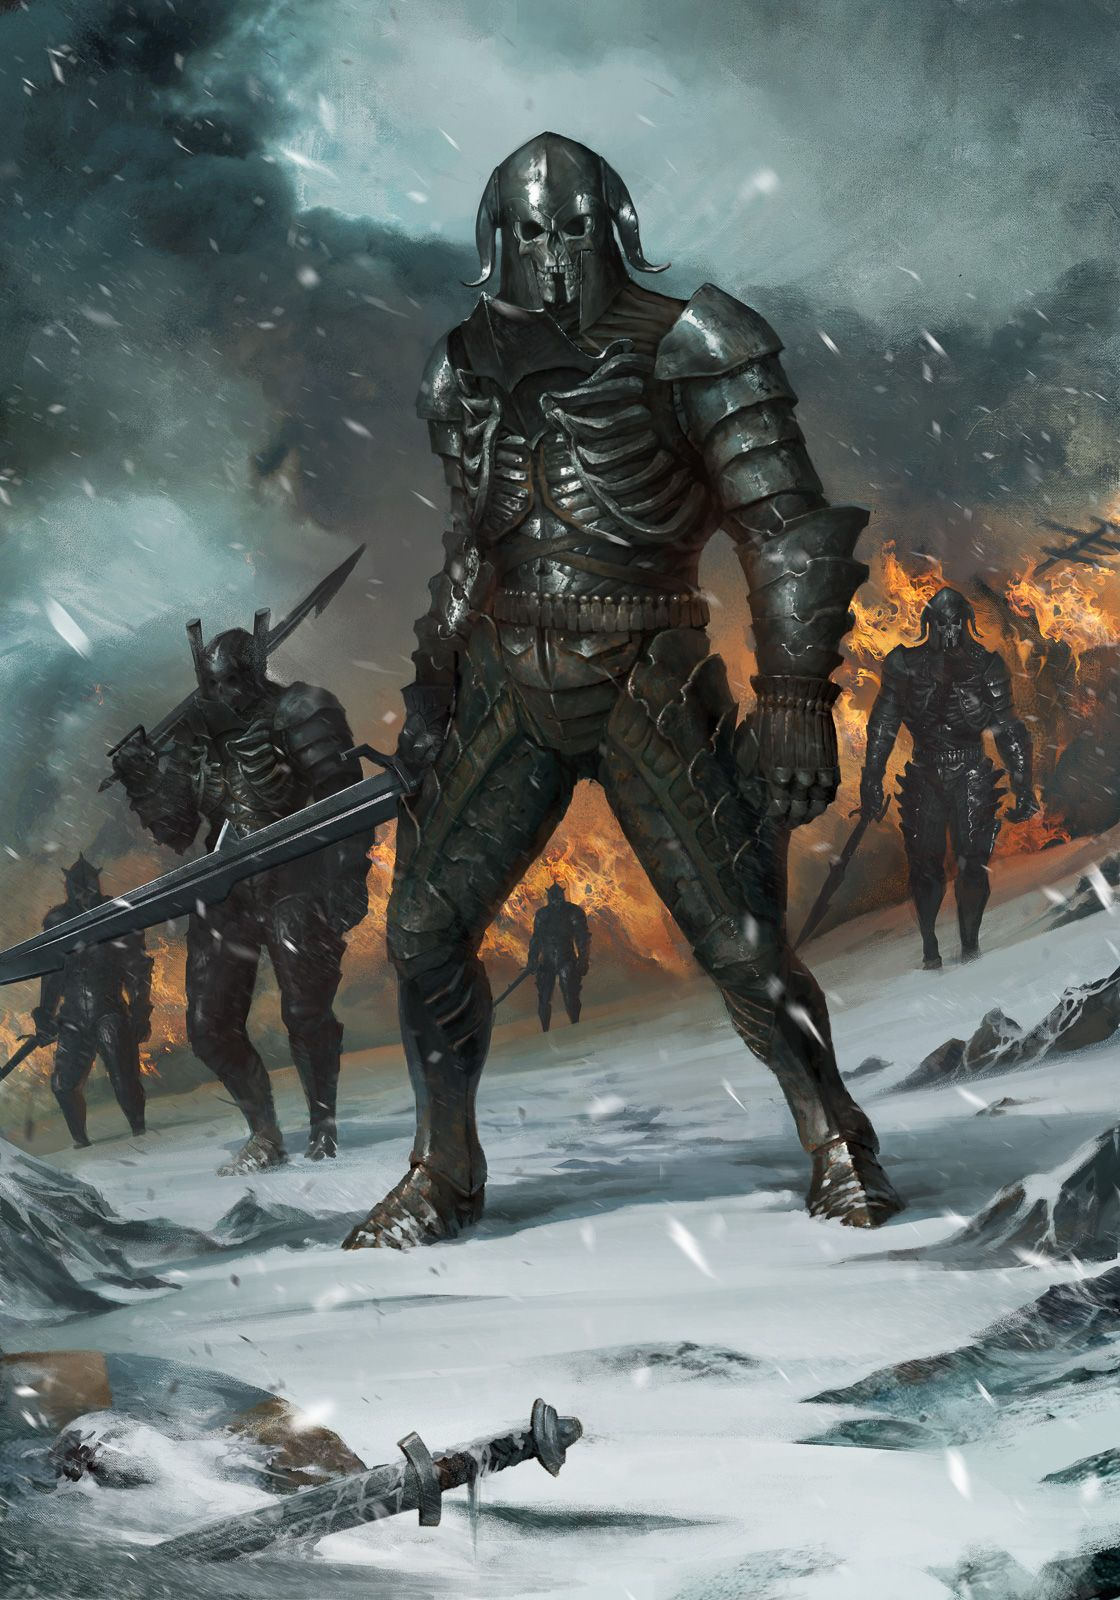 WildHuntWarriors Is An Official Concept Artwork For The Witcher 3 Wild Hunt Video Game Created By CD PROJEKT RED And GWENT Card